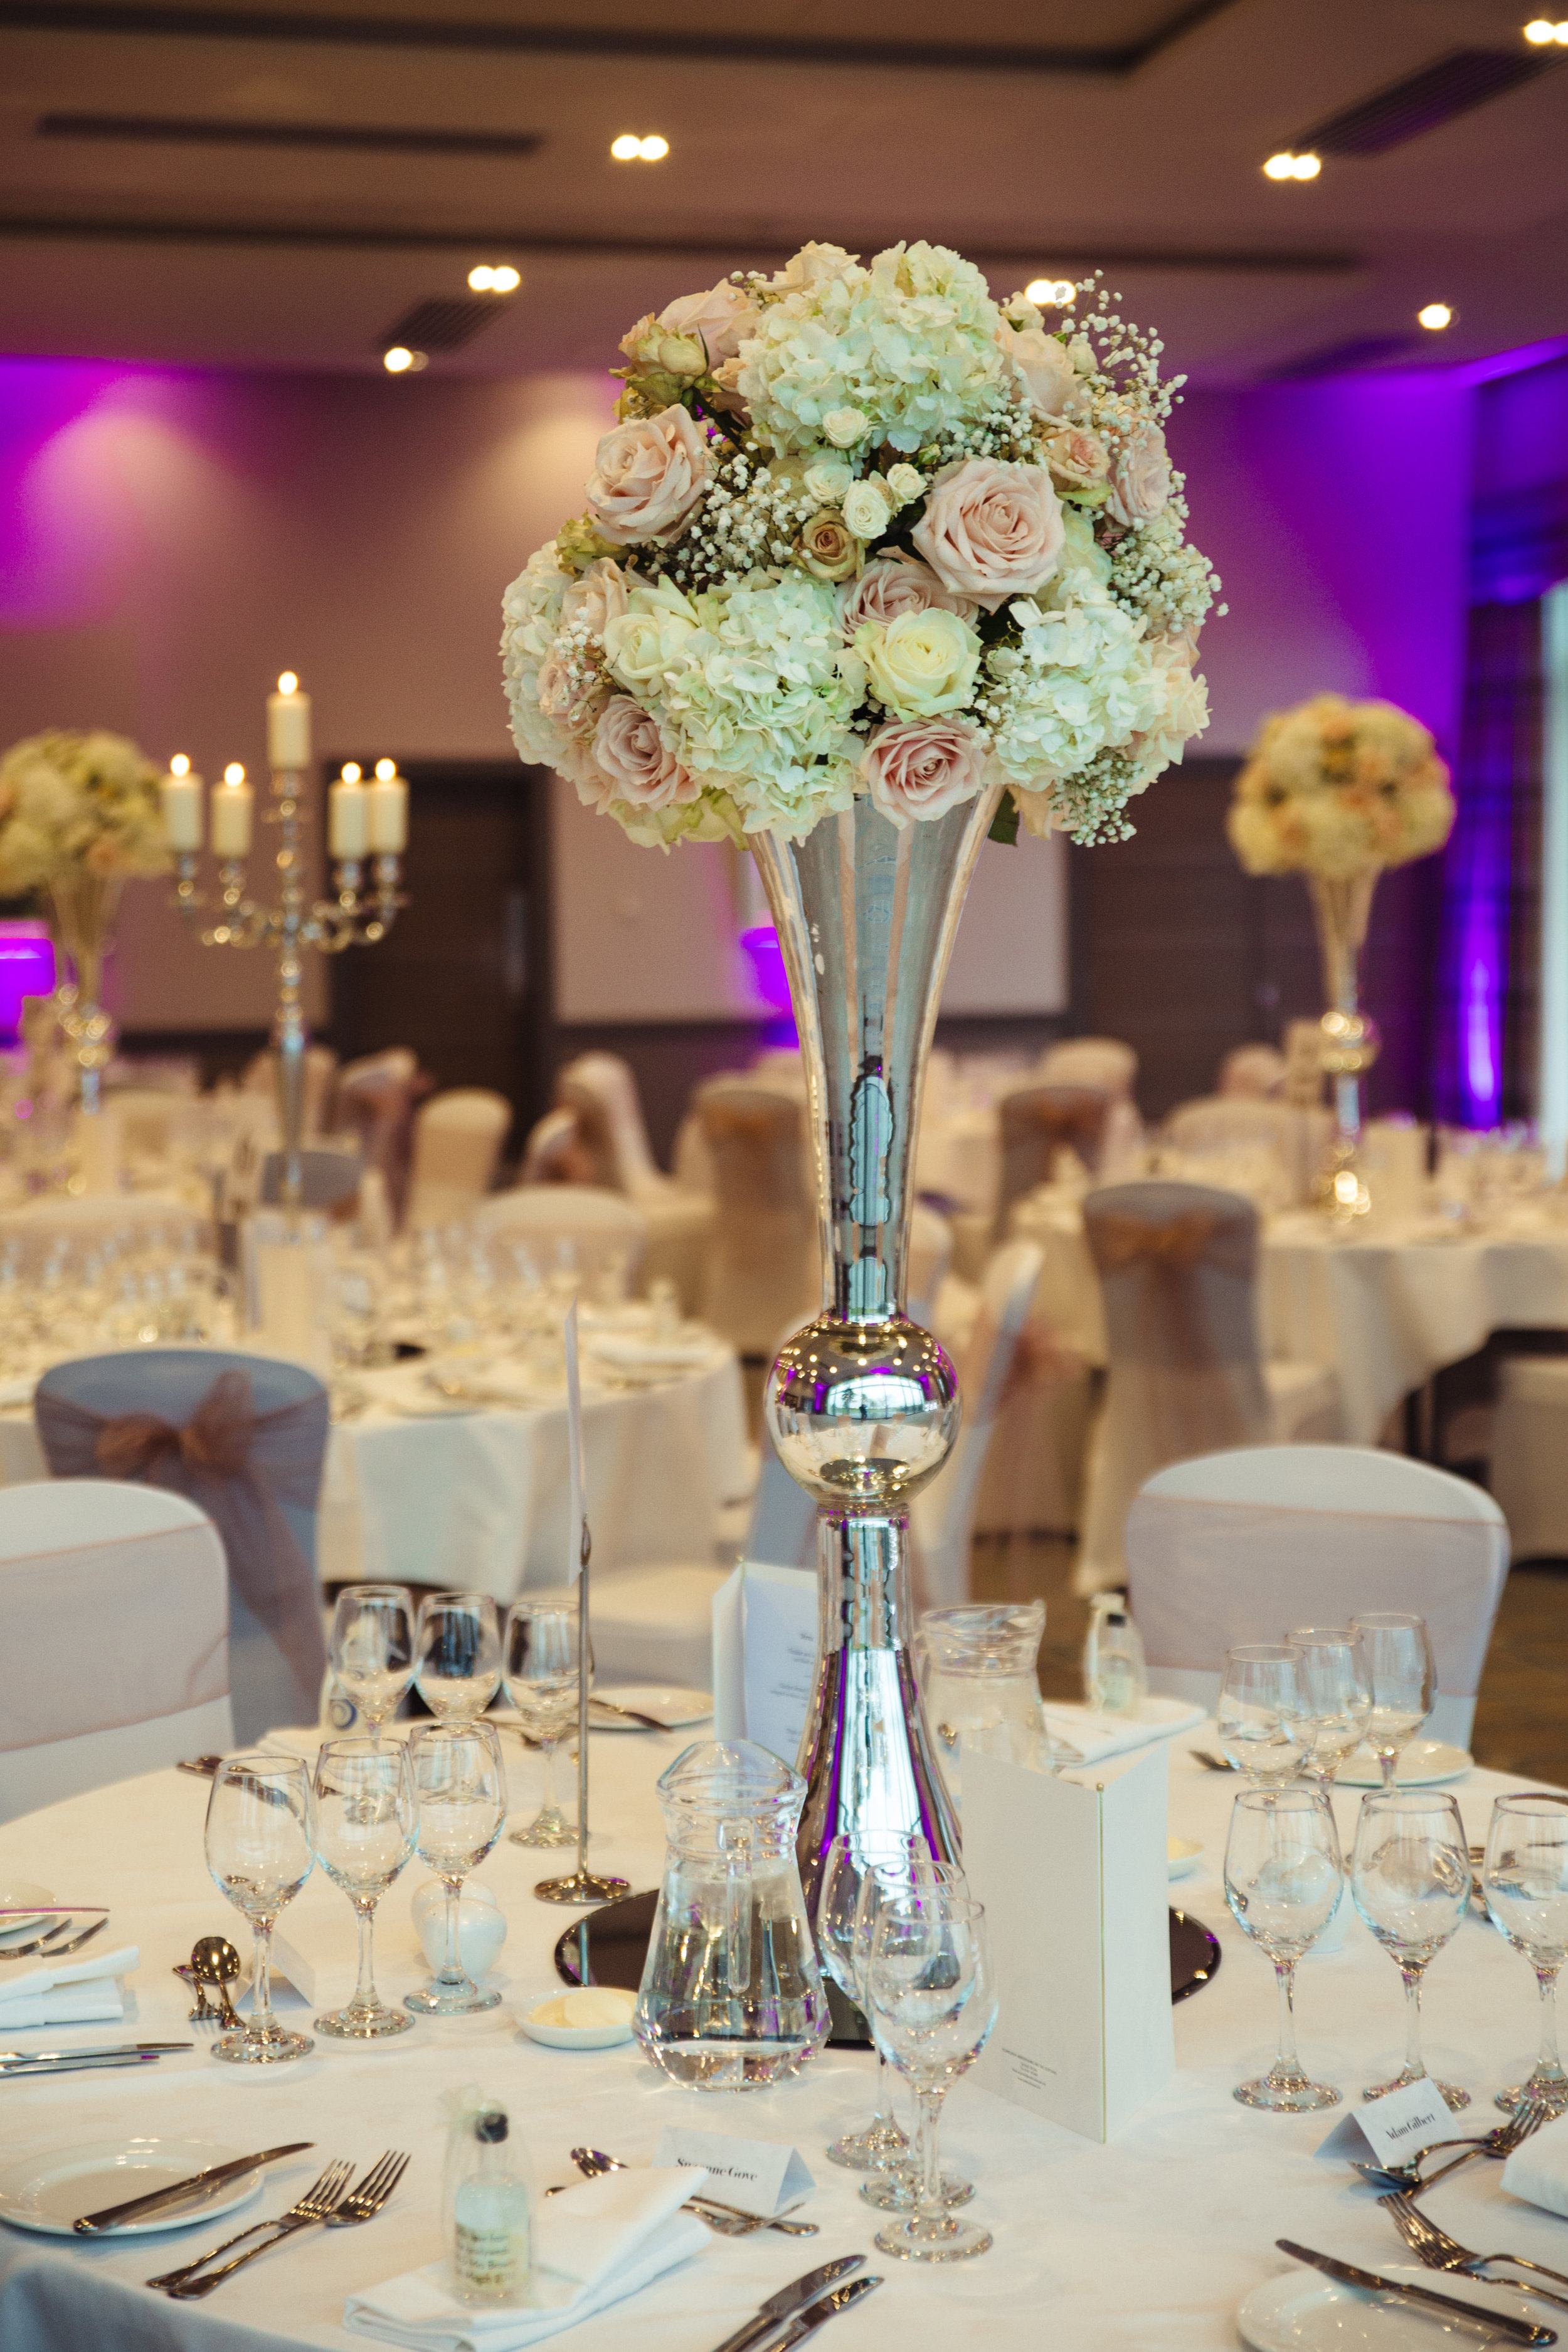 claires style was very classic and elegant and we added a bit of grandeur by using beautiful big silver vases